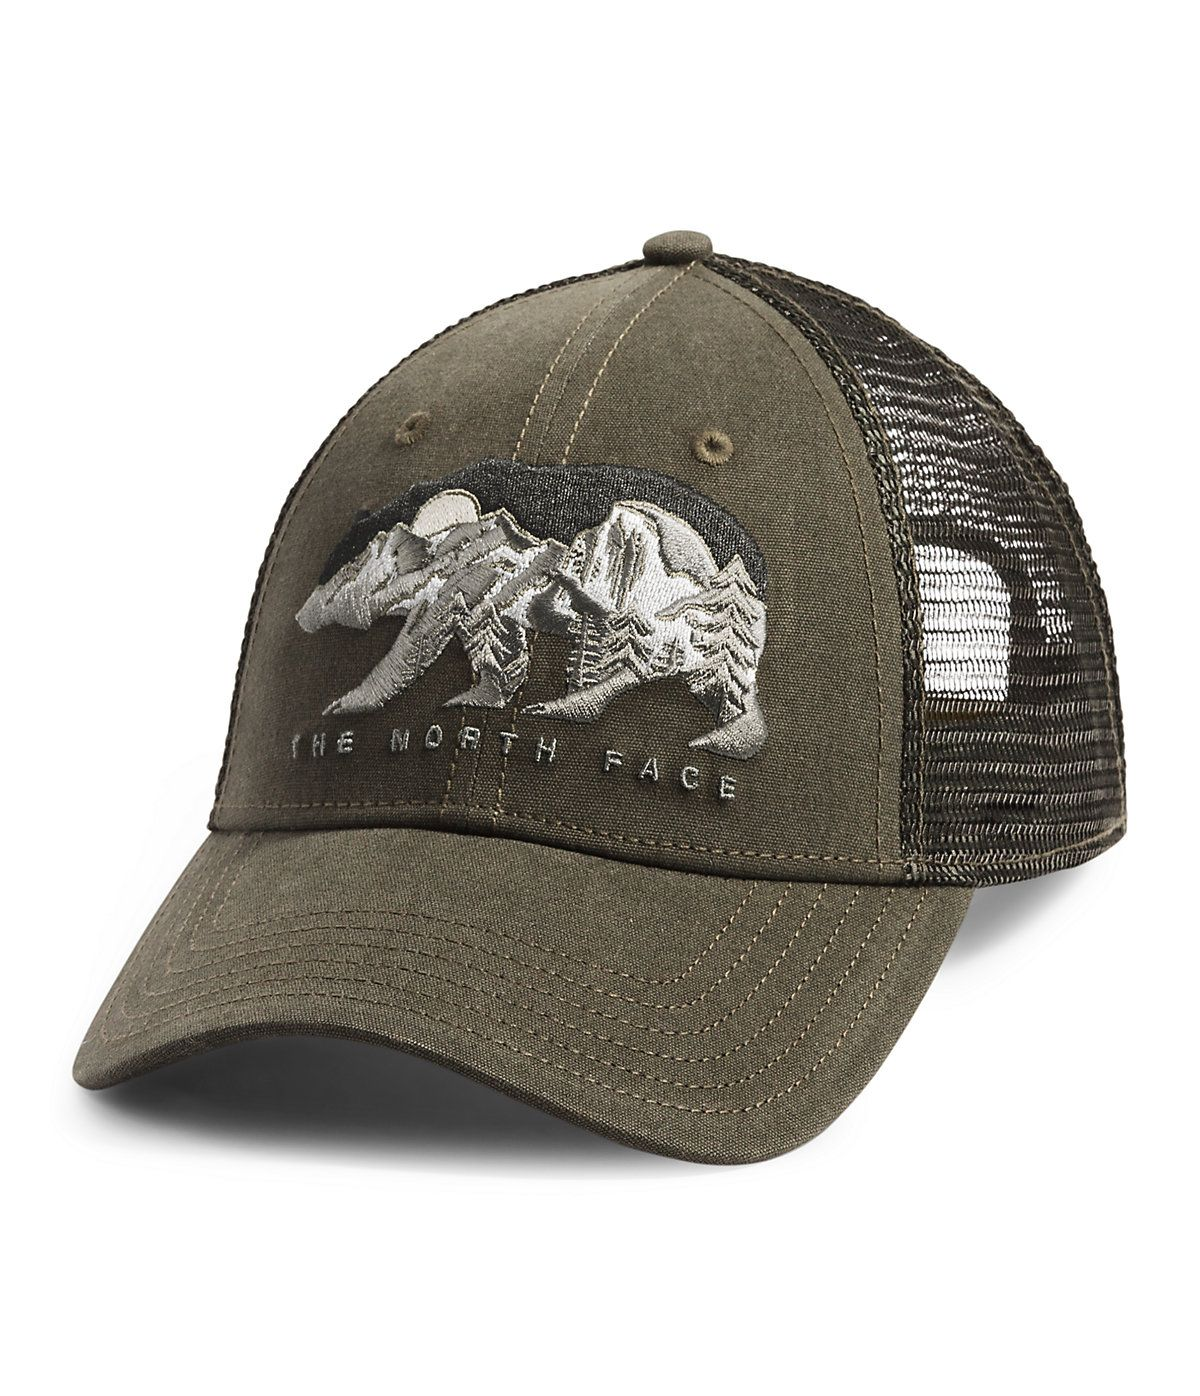 Embroidered Trucker Hat The North Face In 2021 North Face Cap Trucker Trucker Hat